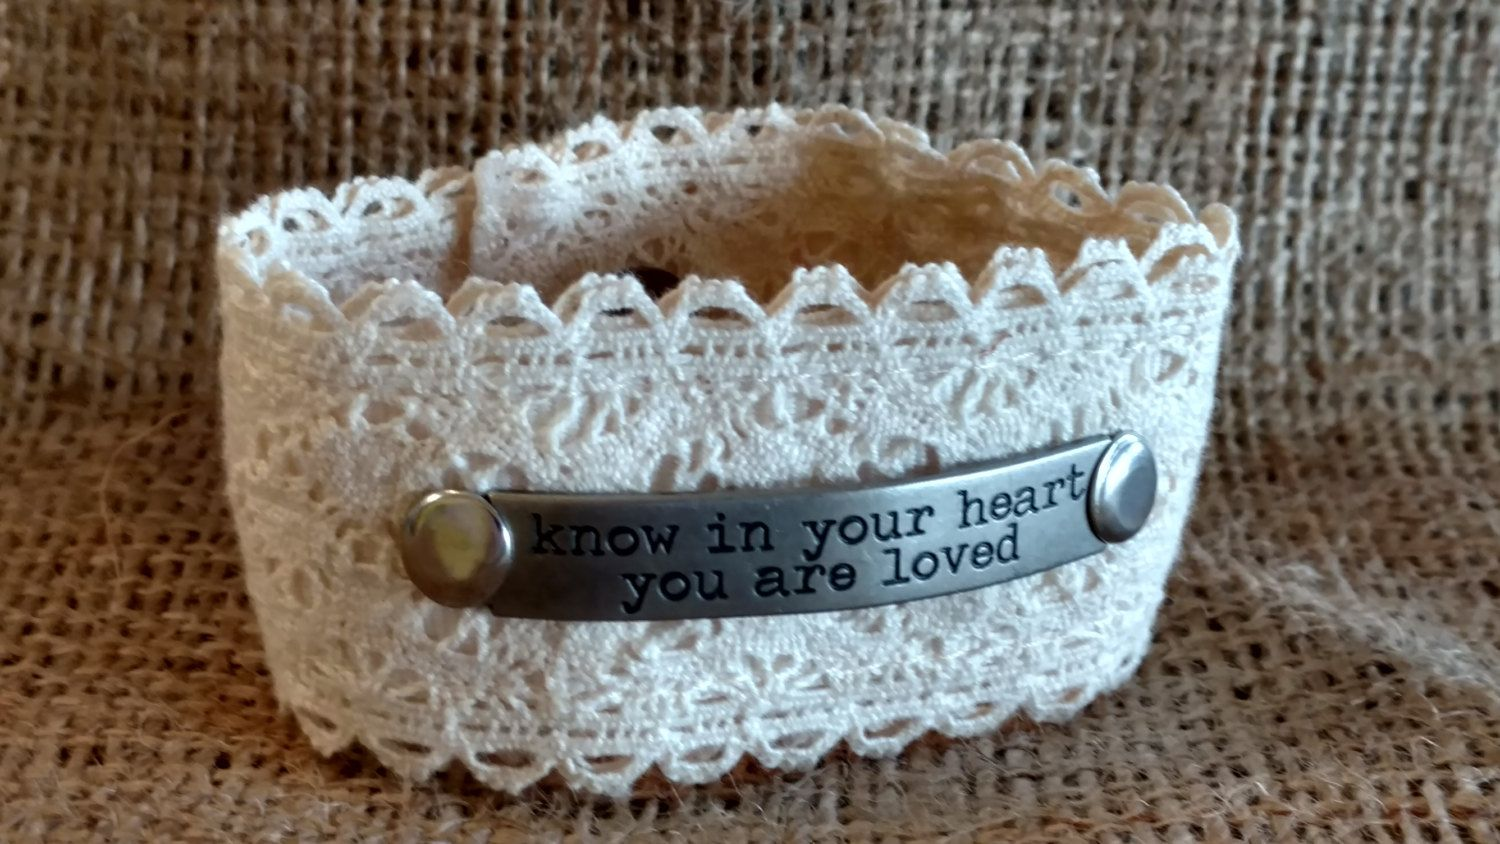 Sweet, Boho, Cream Colored Lace, Inspirational Wrist Cuff Made From Repurposed Belt! by soulfulheARTdesigns on Etsy